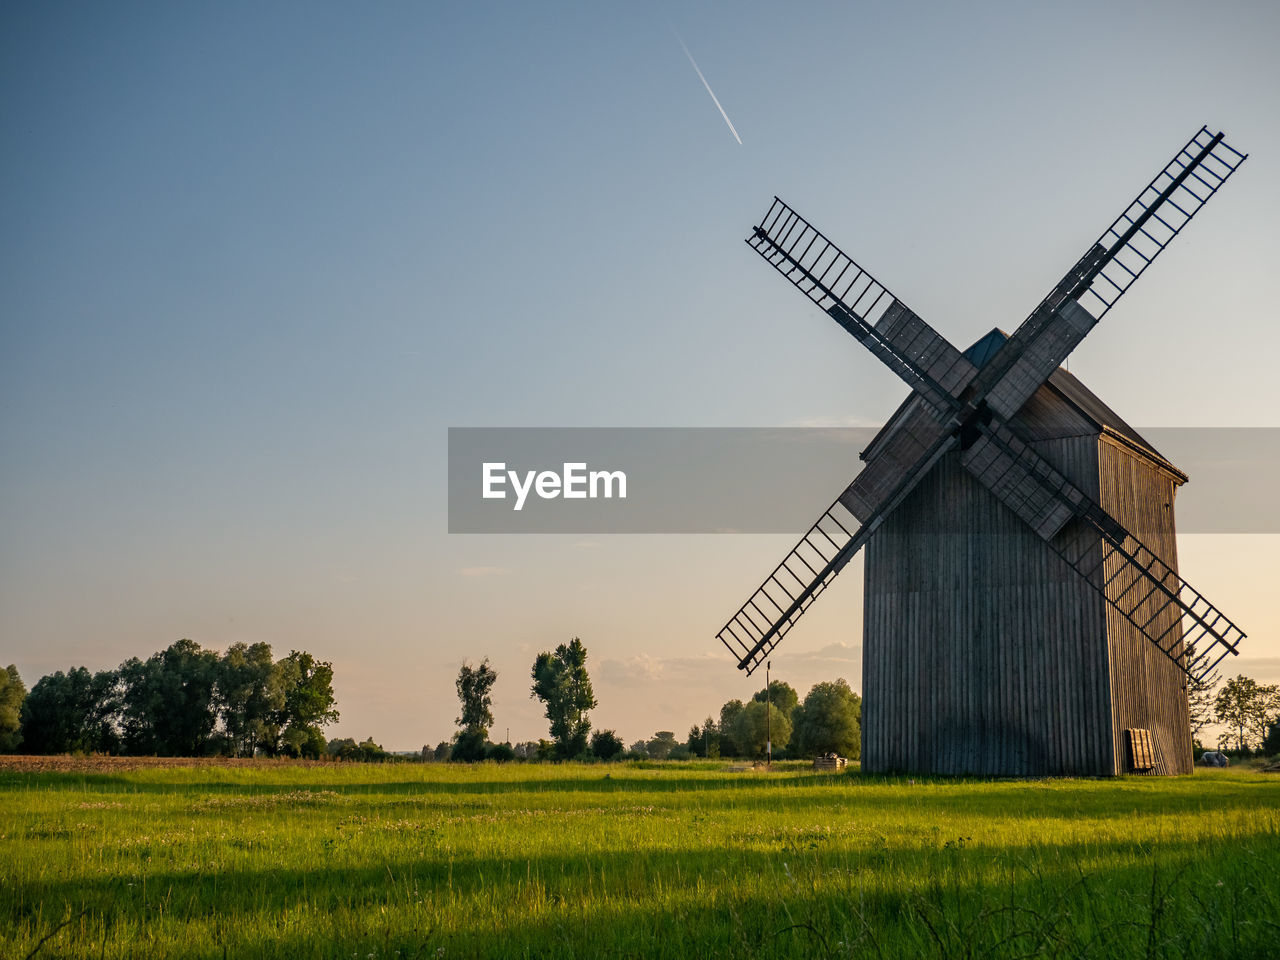 environment, environmental conservation, turbine, wind turbine, field, sky, landscape, renewable energy, rural scene, wind power, fuel and power generation, alternative energy, land, plant, traditional windmill, nature, grass, beauty in nature, agriculture, farm, outdoors